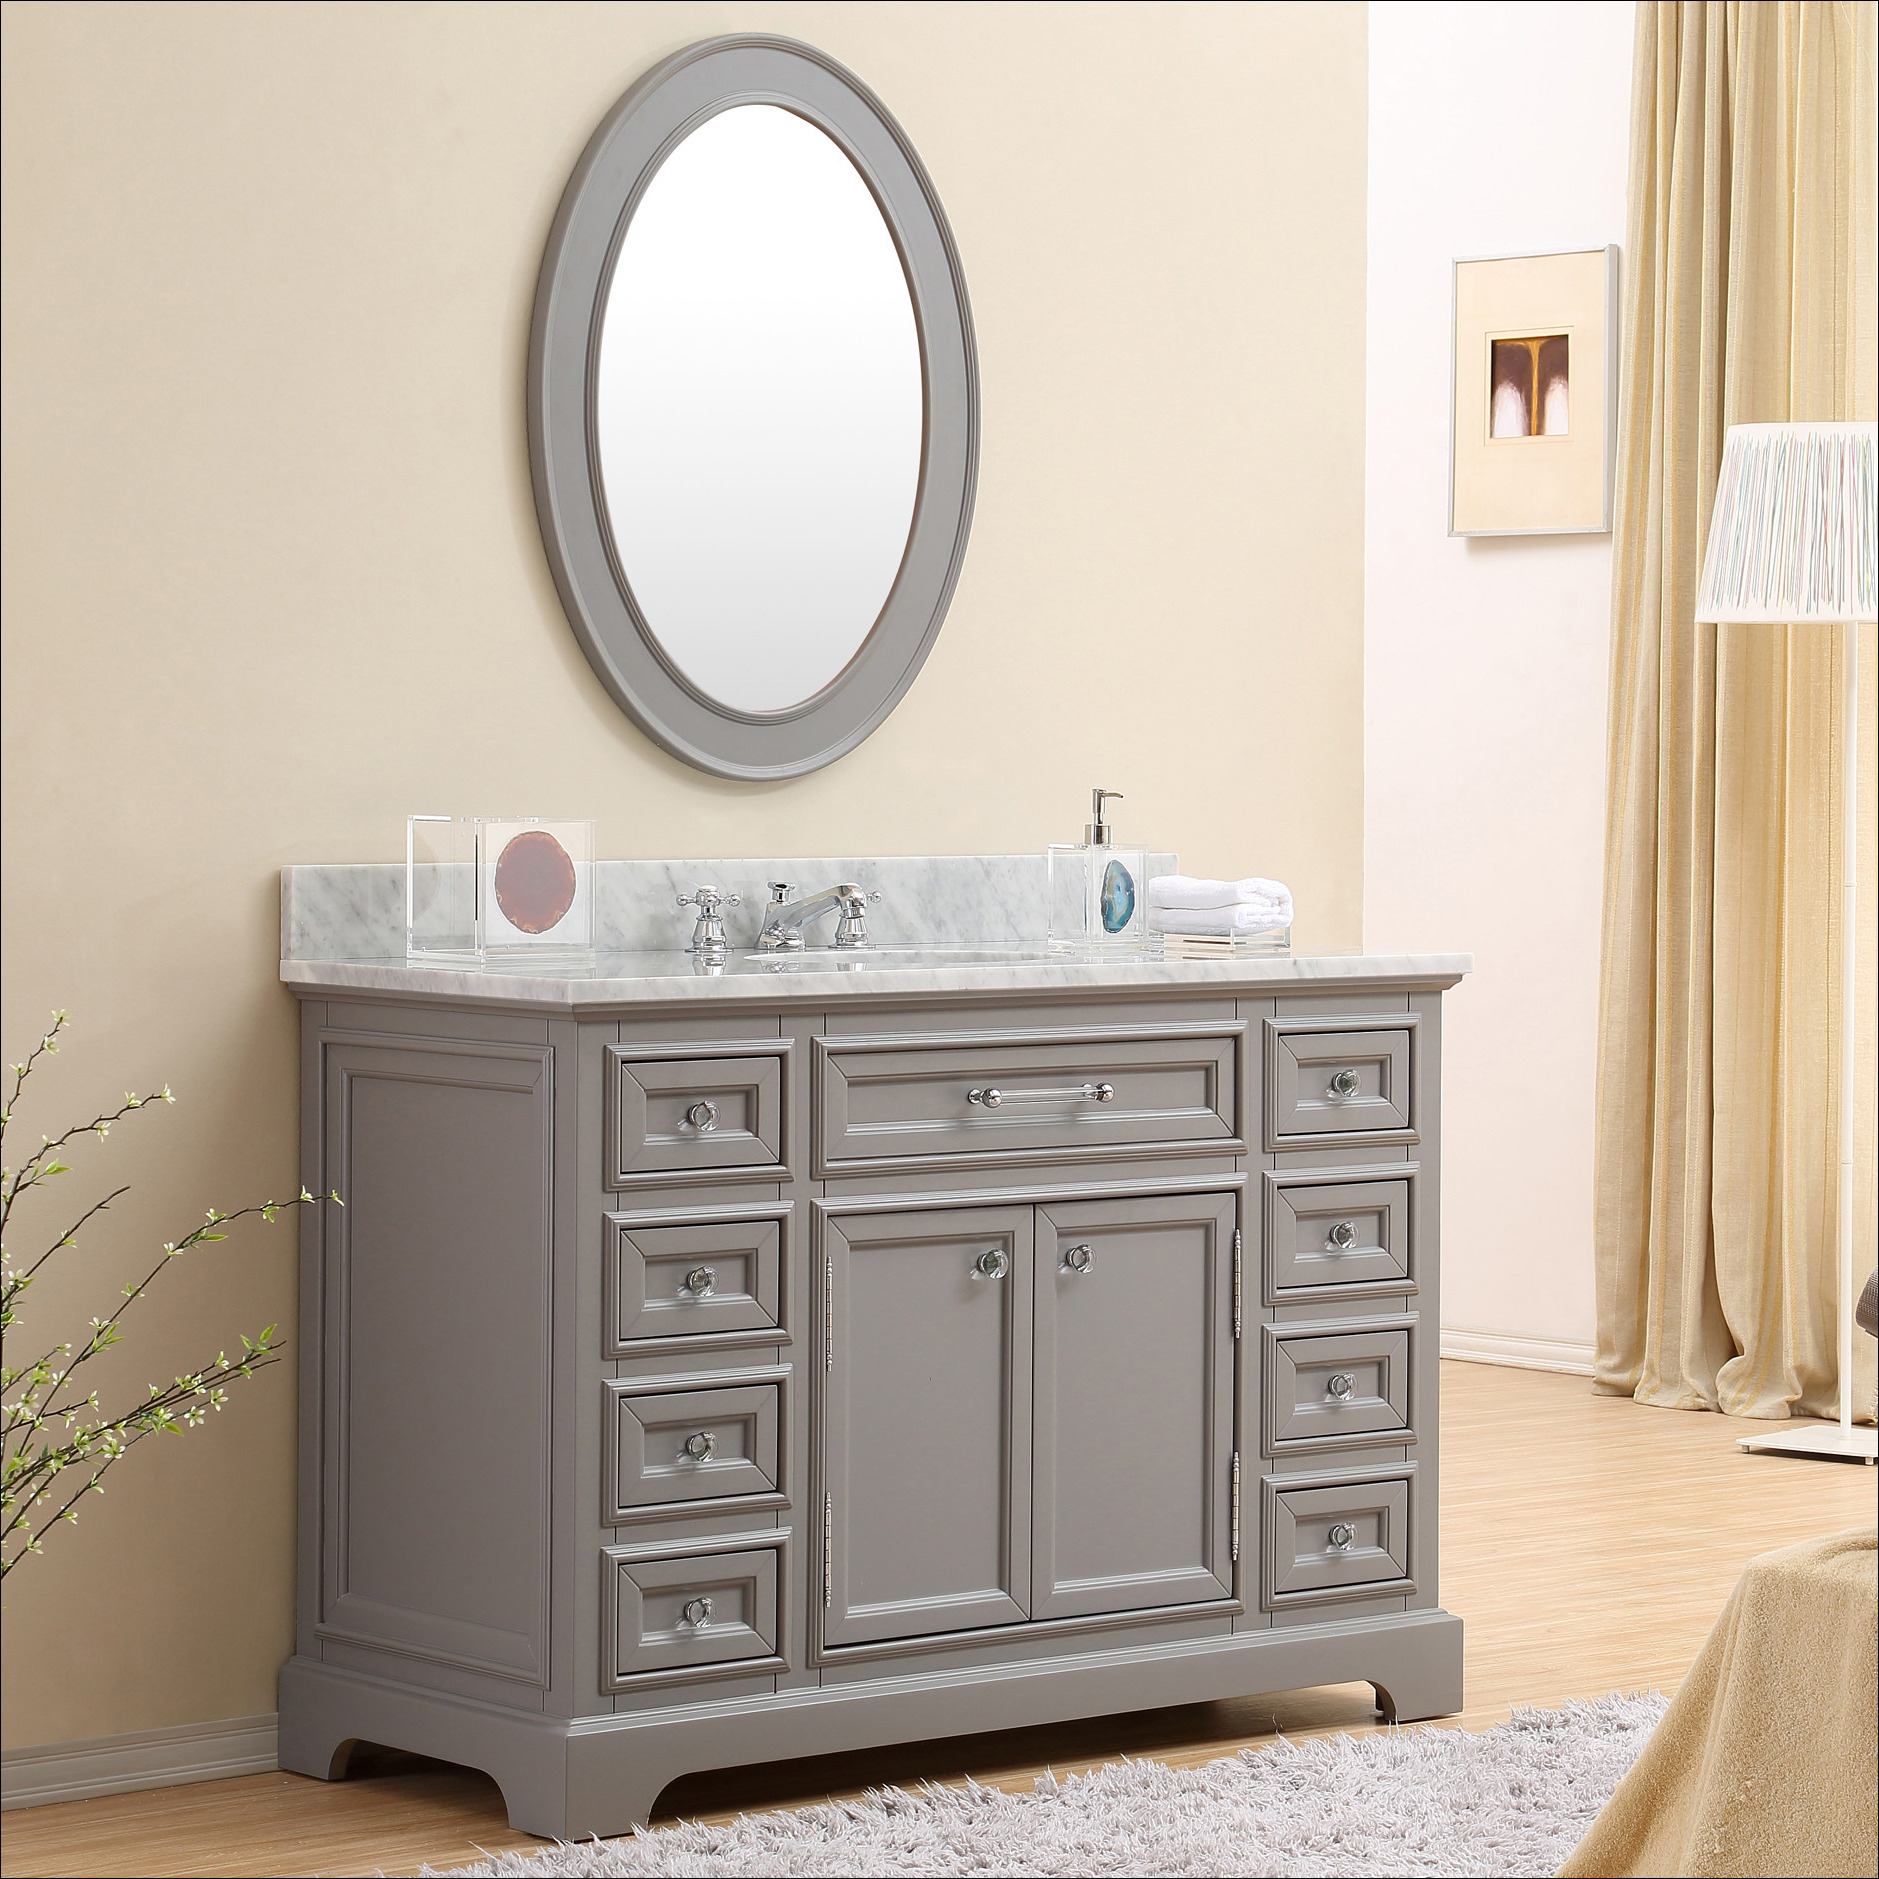 Modular 48 Inch Traditional Bathroom Vanities Cheap High End | The Largest throughout Traditional Bathroom Vanity